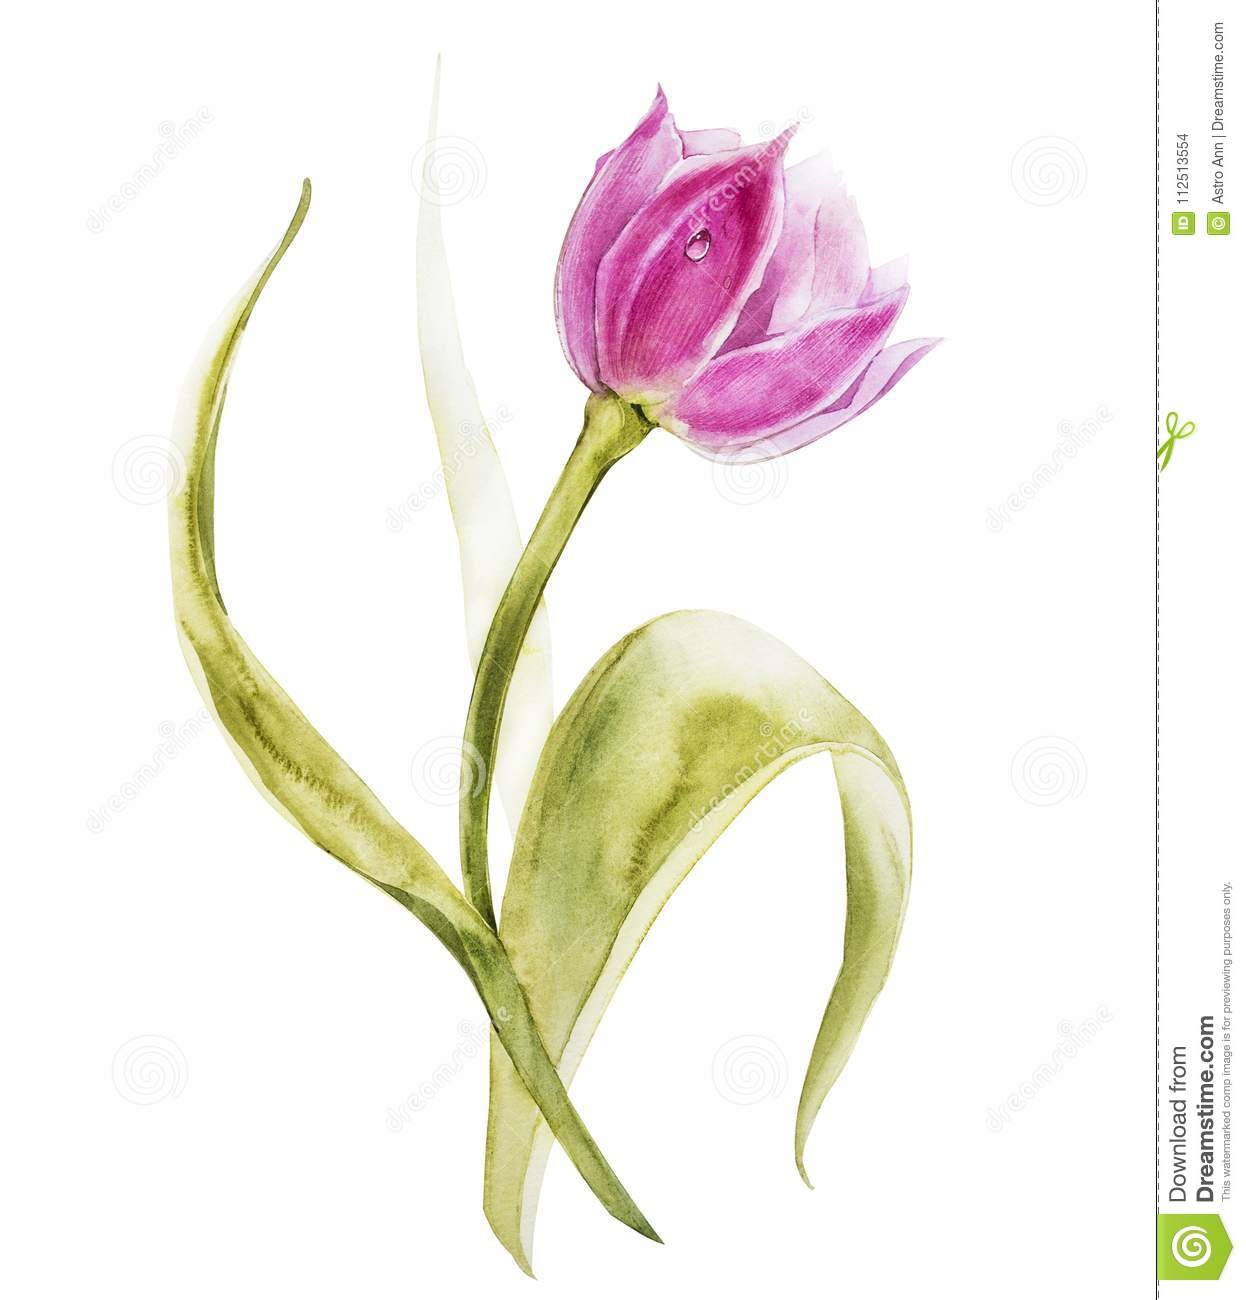 Watercolor tulips flowers. Spring or summer decoration floral botanical illustration. Watercolor isolated. Perfect for